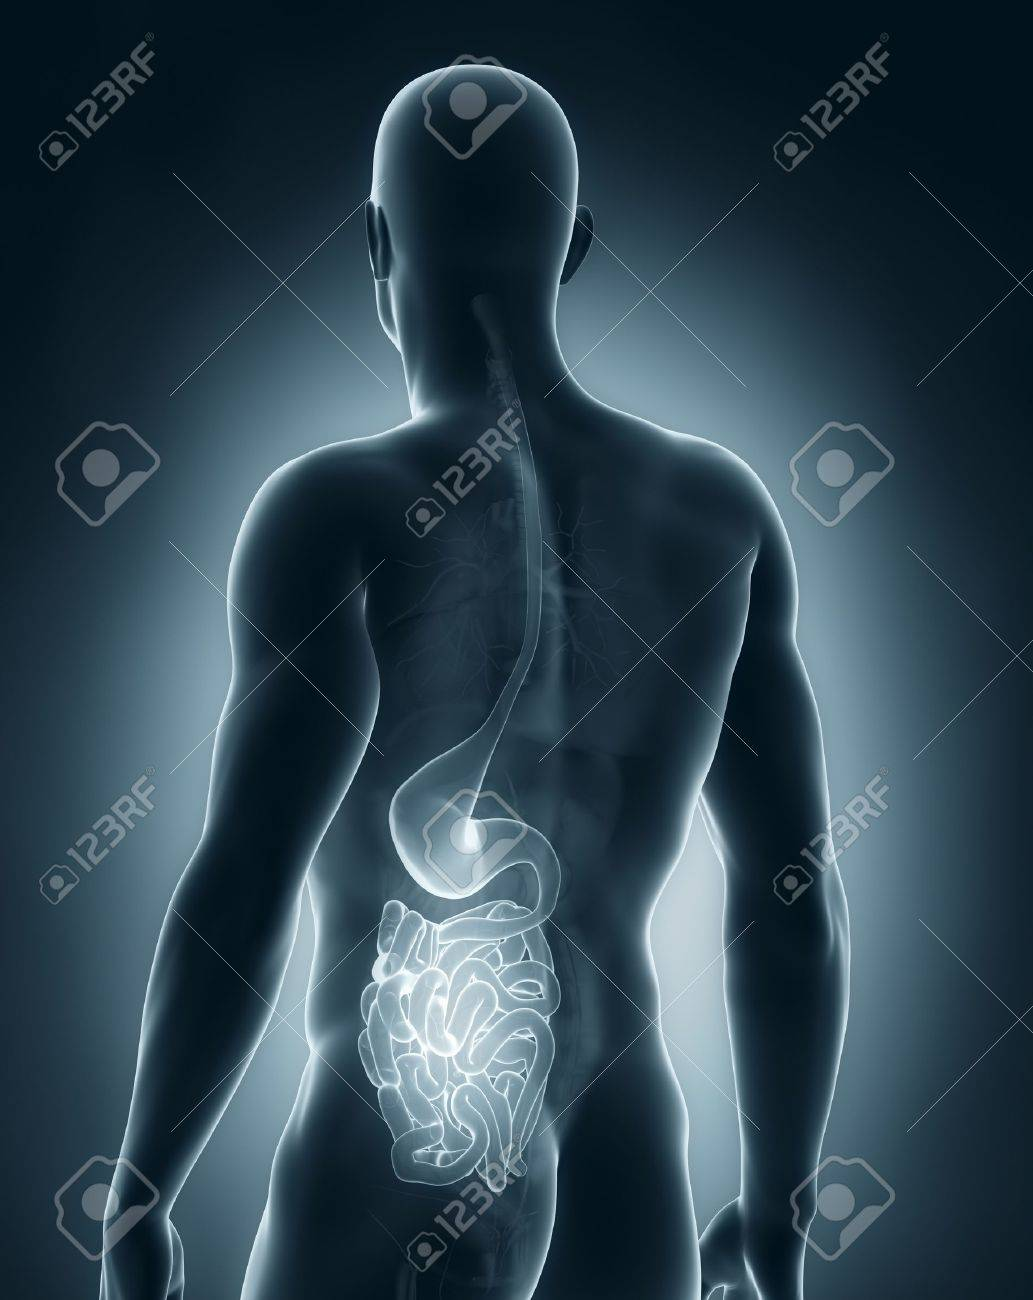 Male digestive system anatomy posterior view Stock Photo - 21790251